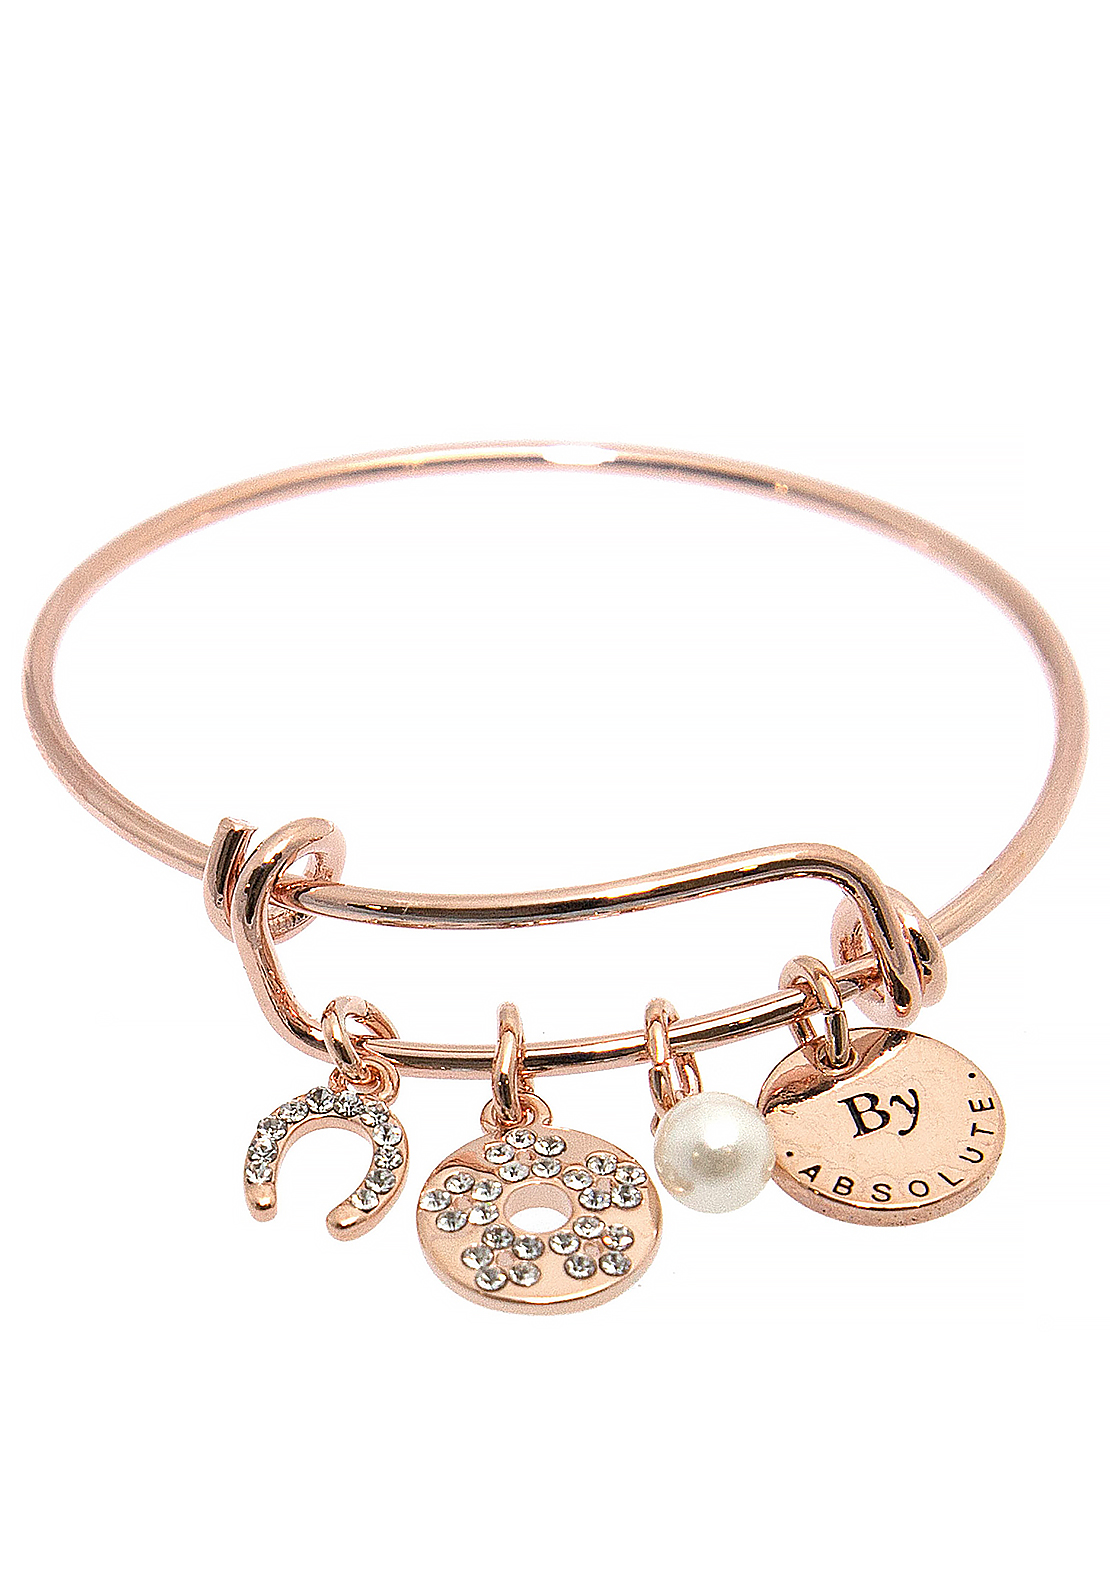 Absolute Jewellery Girls June Charm Bangle, Rose Gold